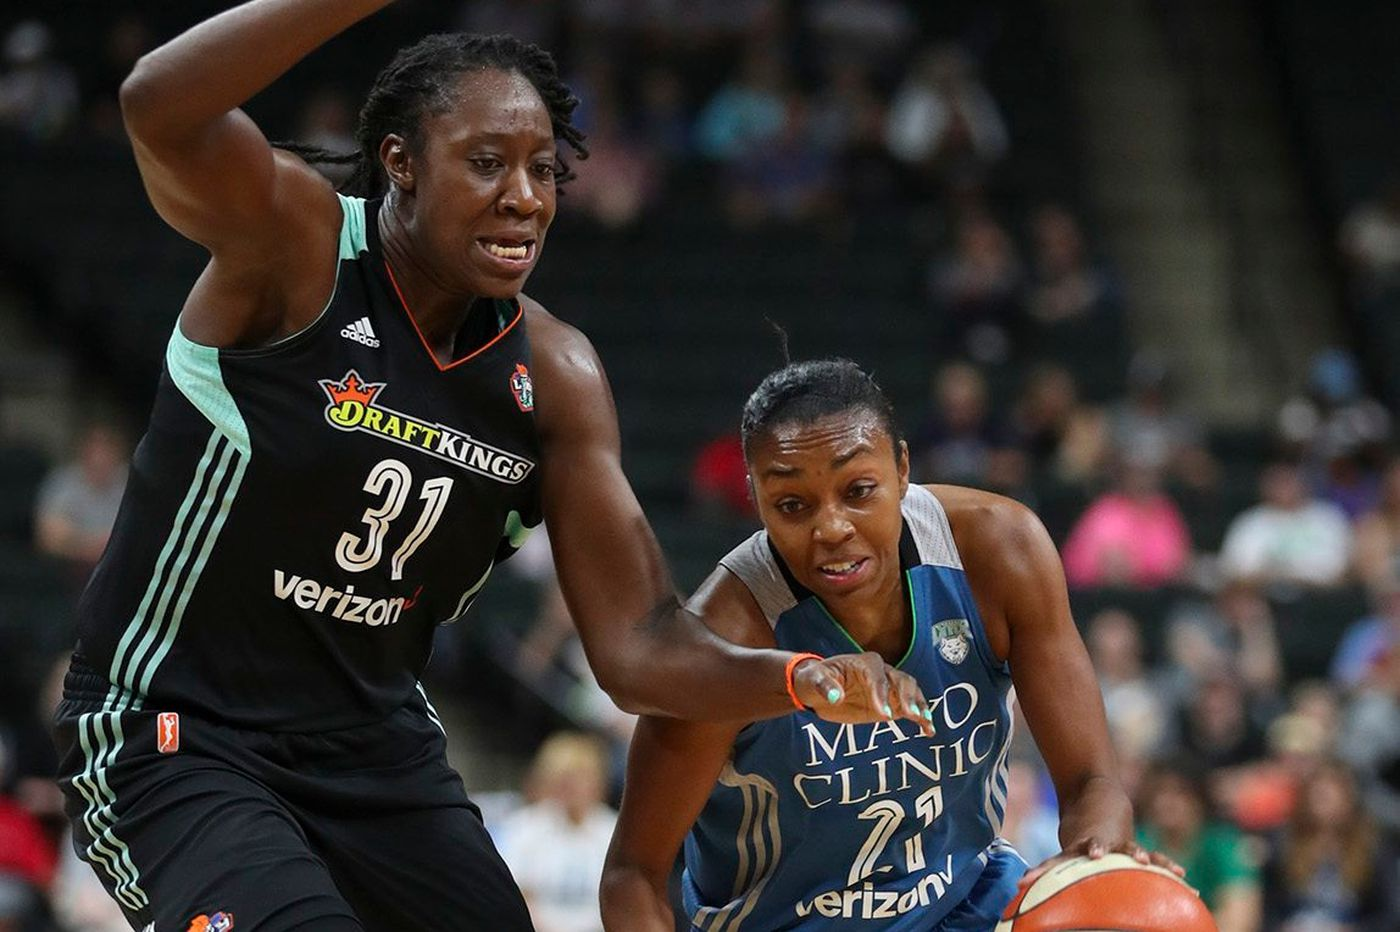 Sports chatter: WNBA's Renee Montgomery won't play in 2020 to keep focus on social justice reform; Chargers interested in Colin Kaepernick?